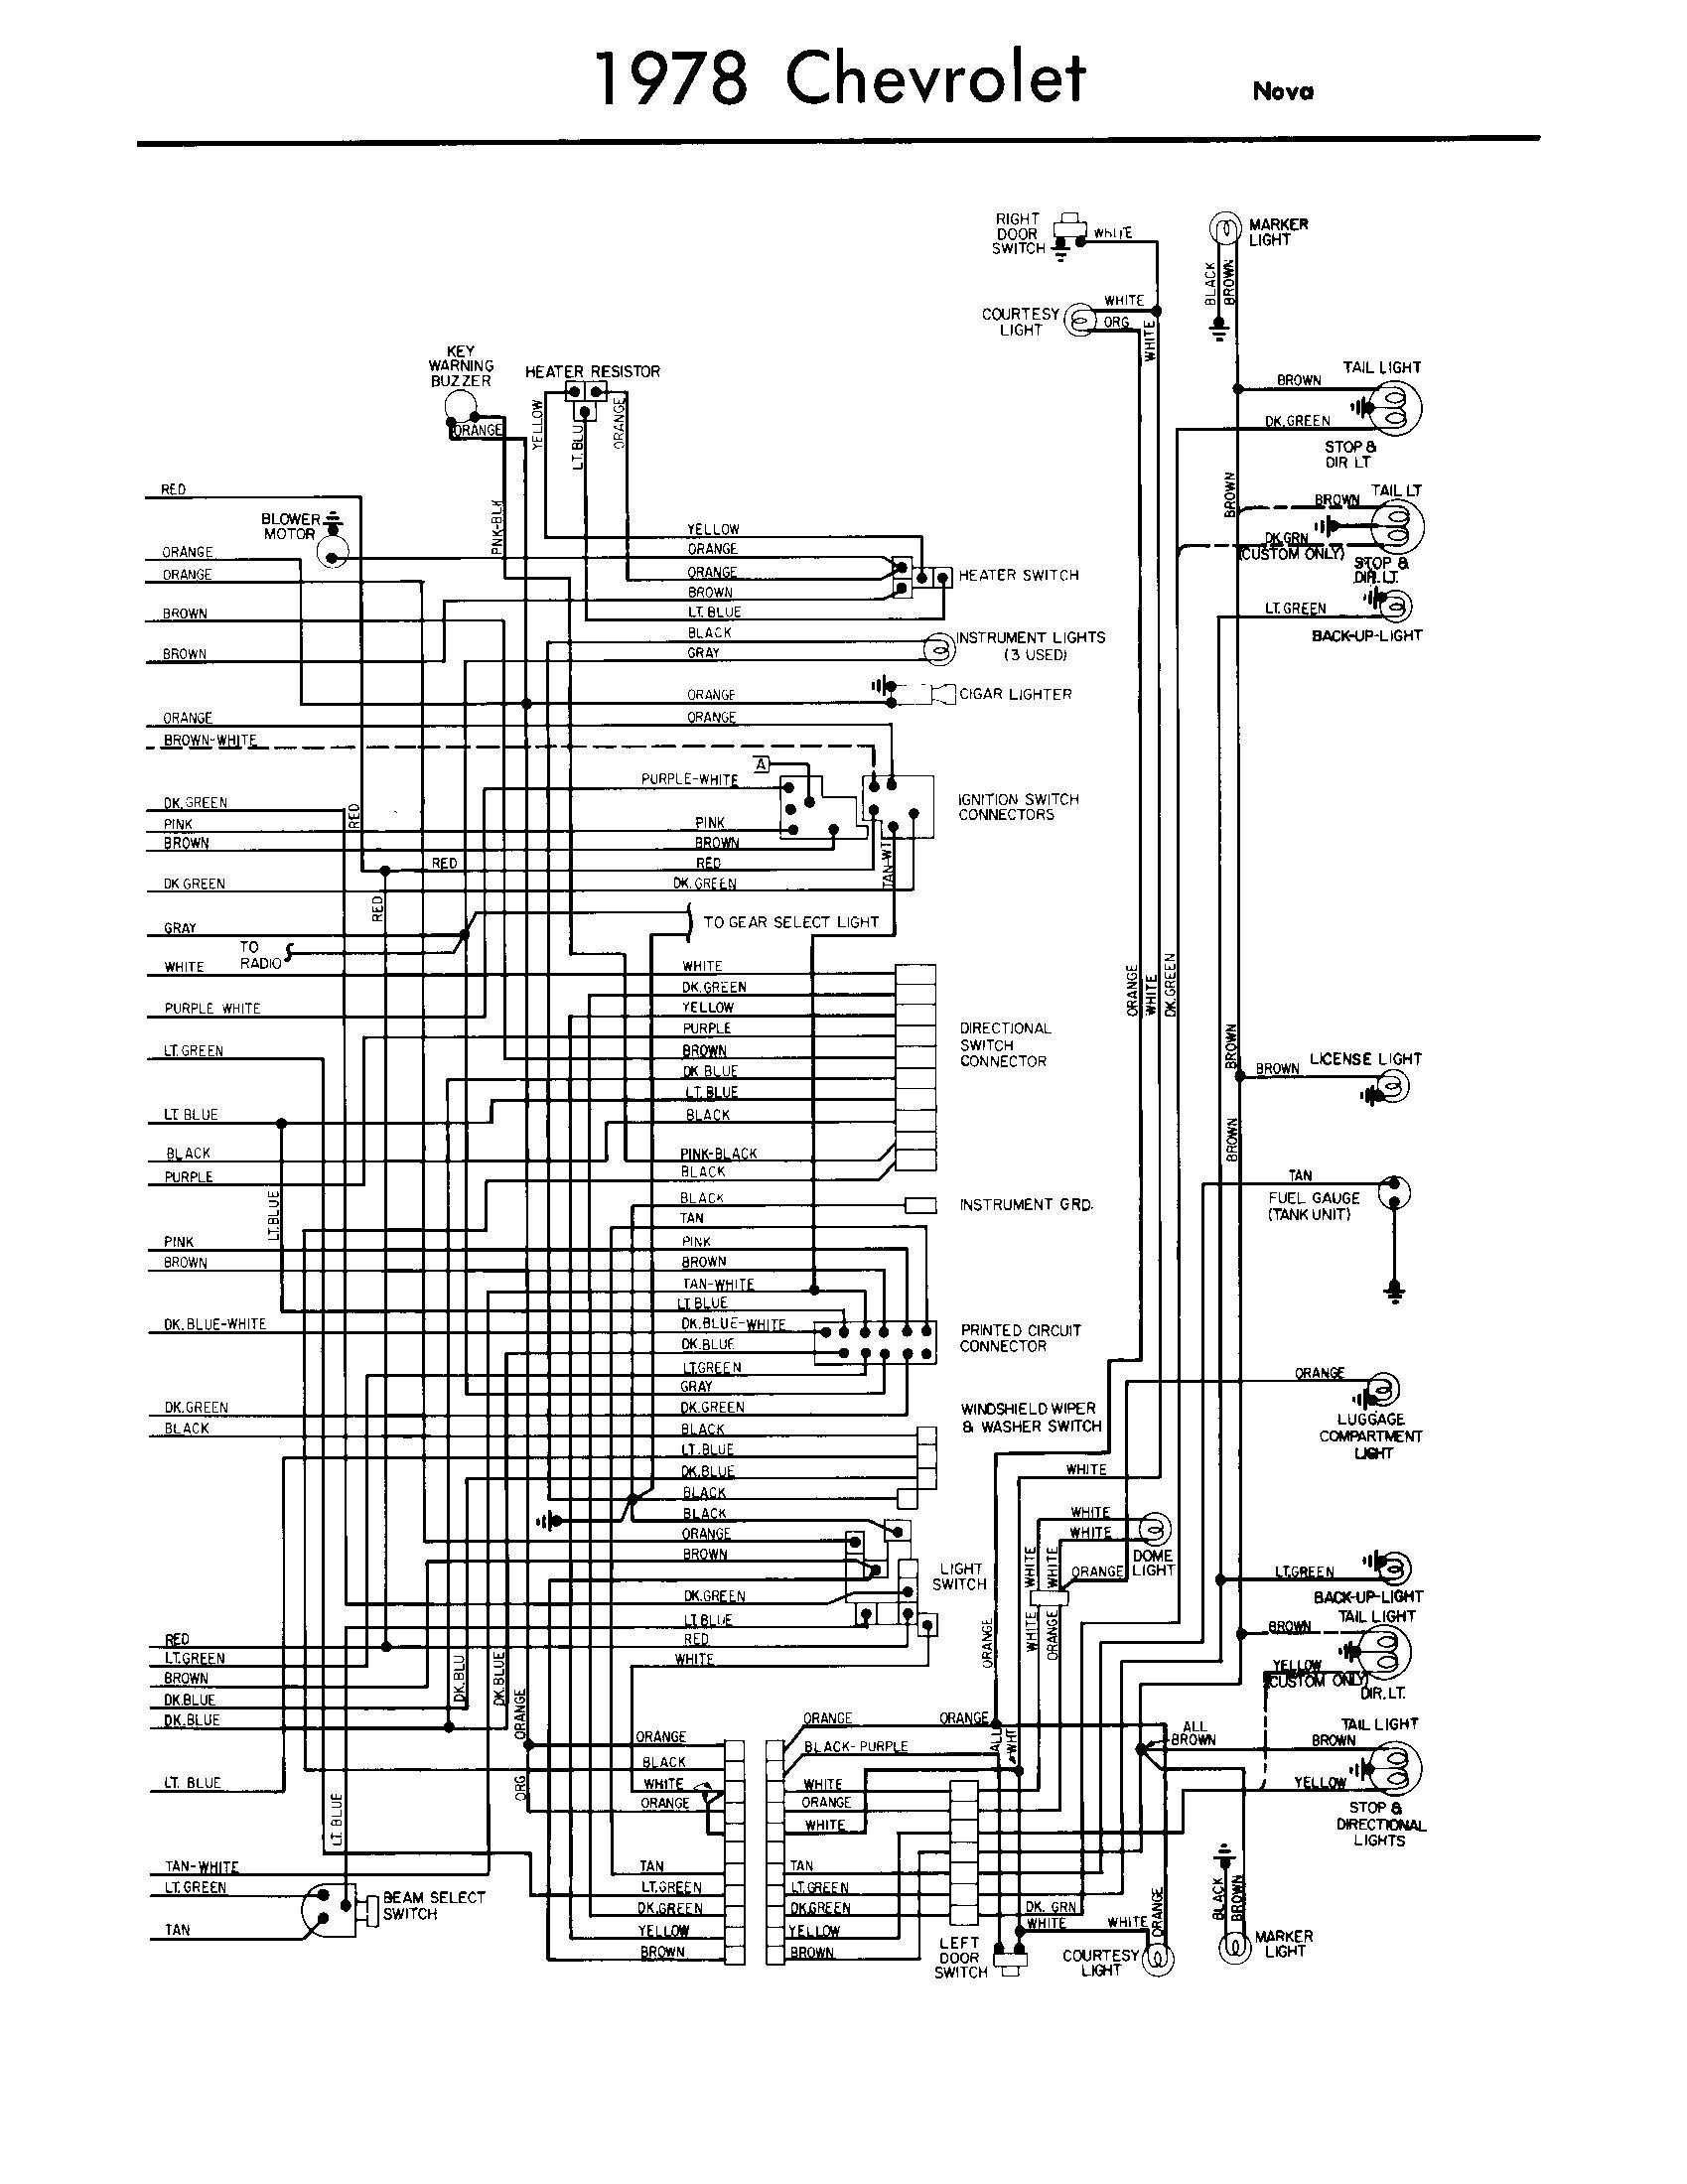 1978 chevy truck wiring diagram 1976 chevy corvette wiring diagram wiring data of 1978 chevy truck wiring diagram 2002 corvette wiring diagram wiring diagram schematic name